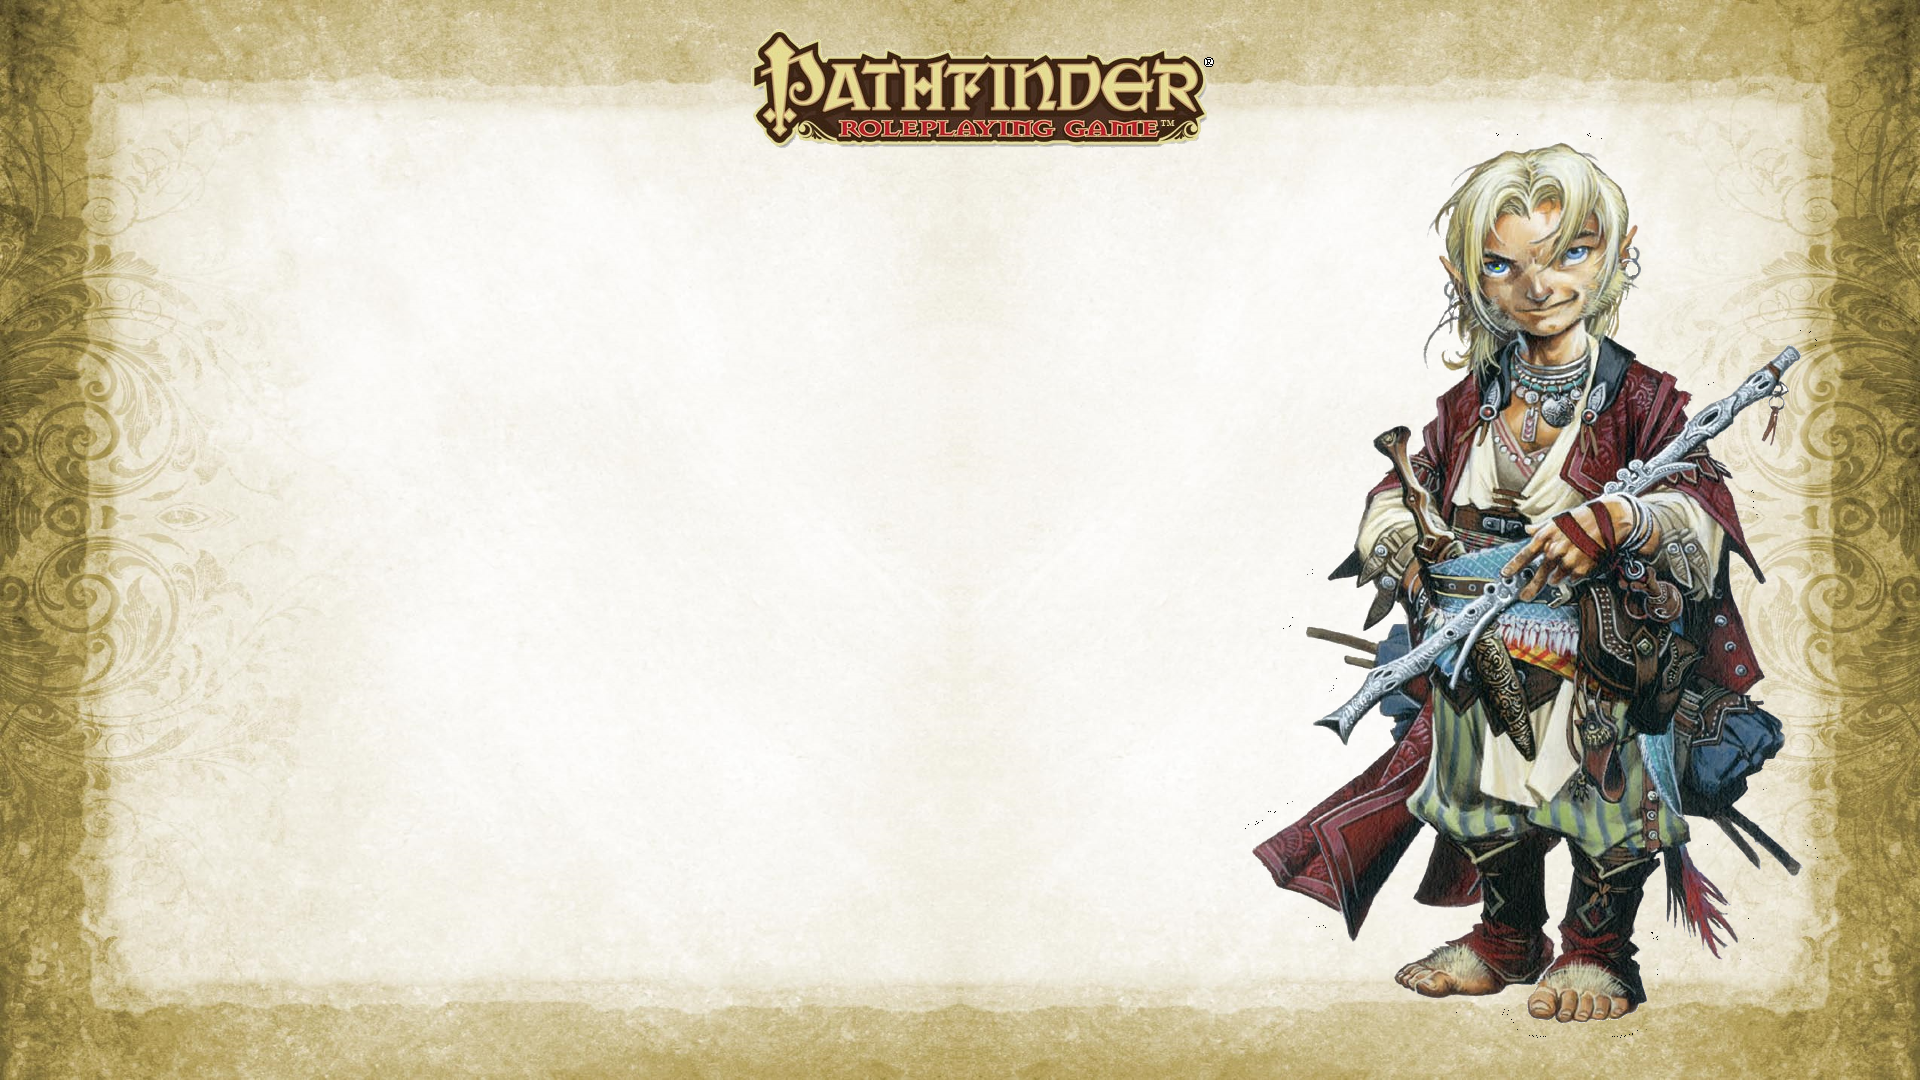 Wallpaper 1920x1080 Halfling Bard Created From Pathfinder